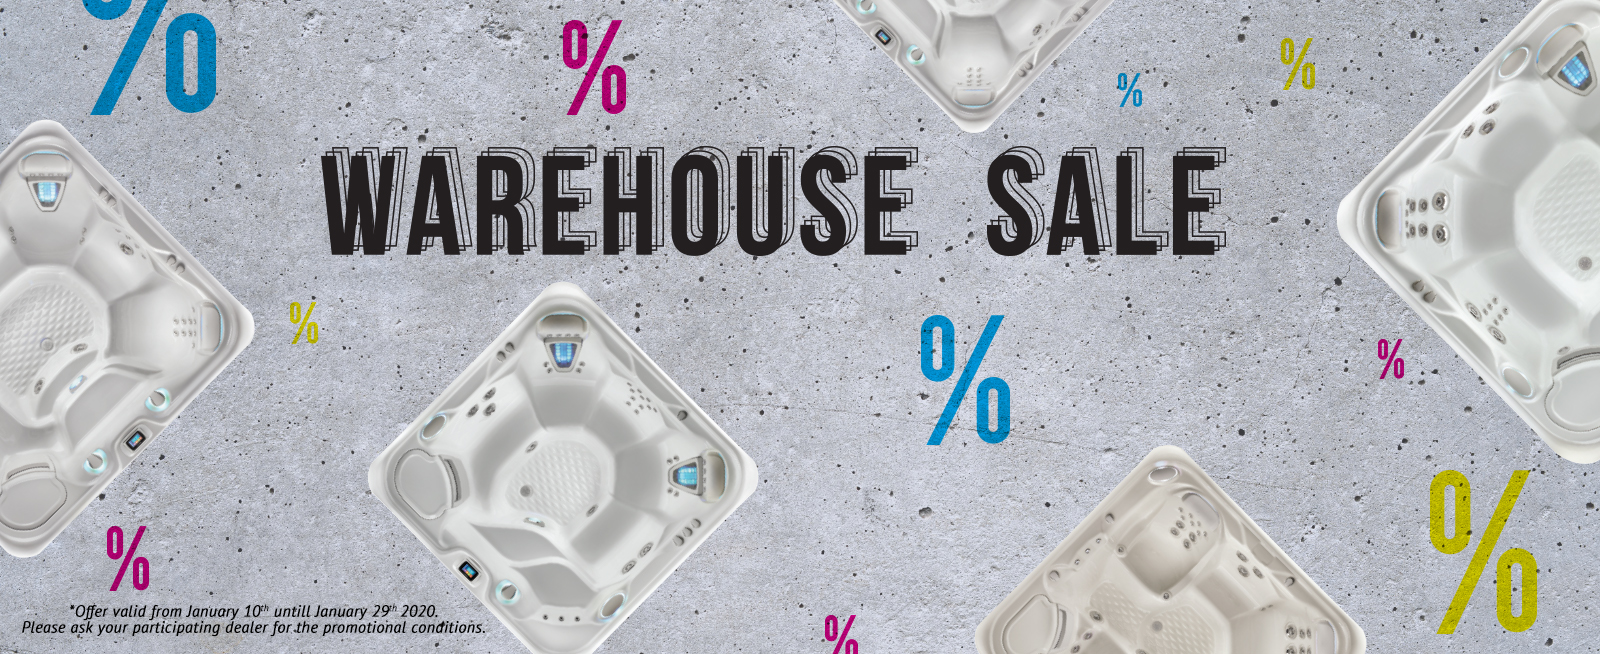 hss_uk_01_20_warehouse_sale_homepage_banner_big_1600x654px_ujpsts